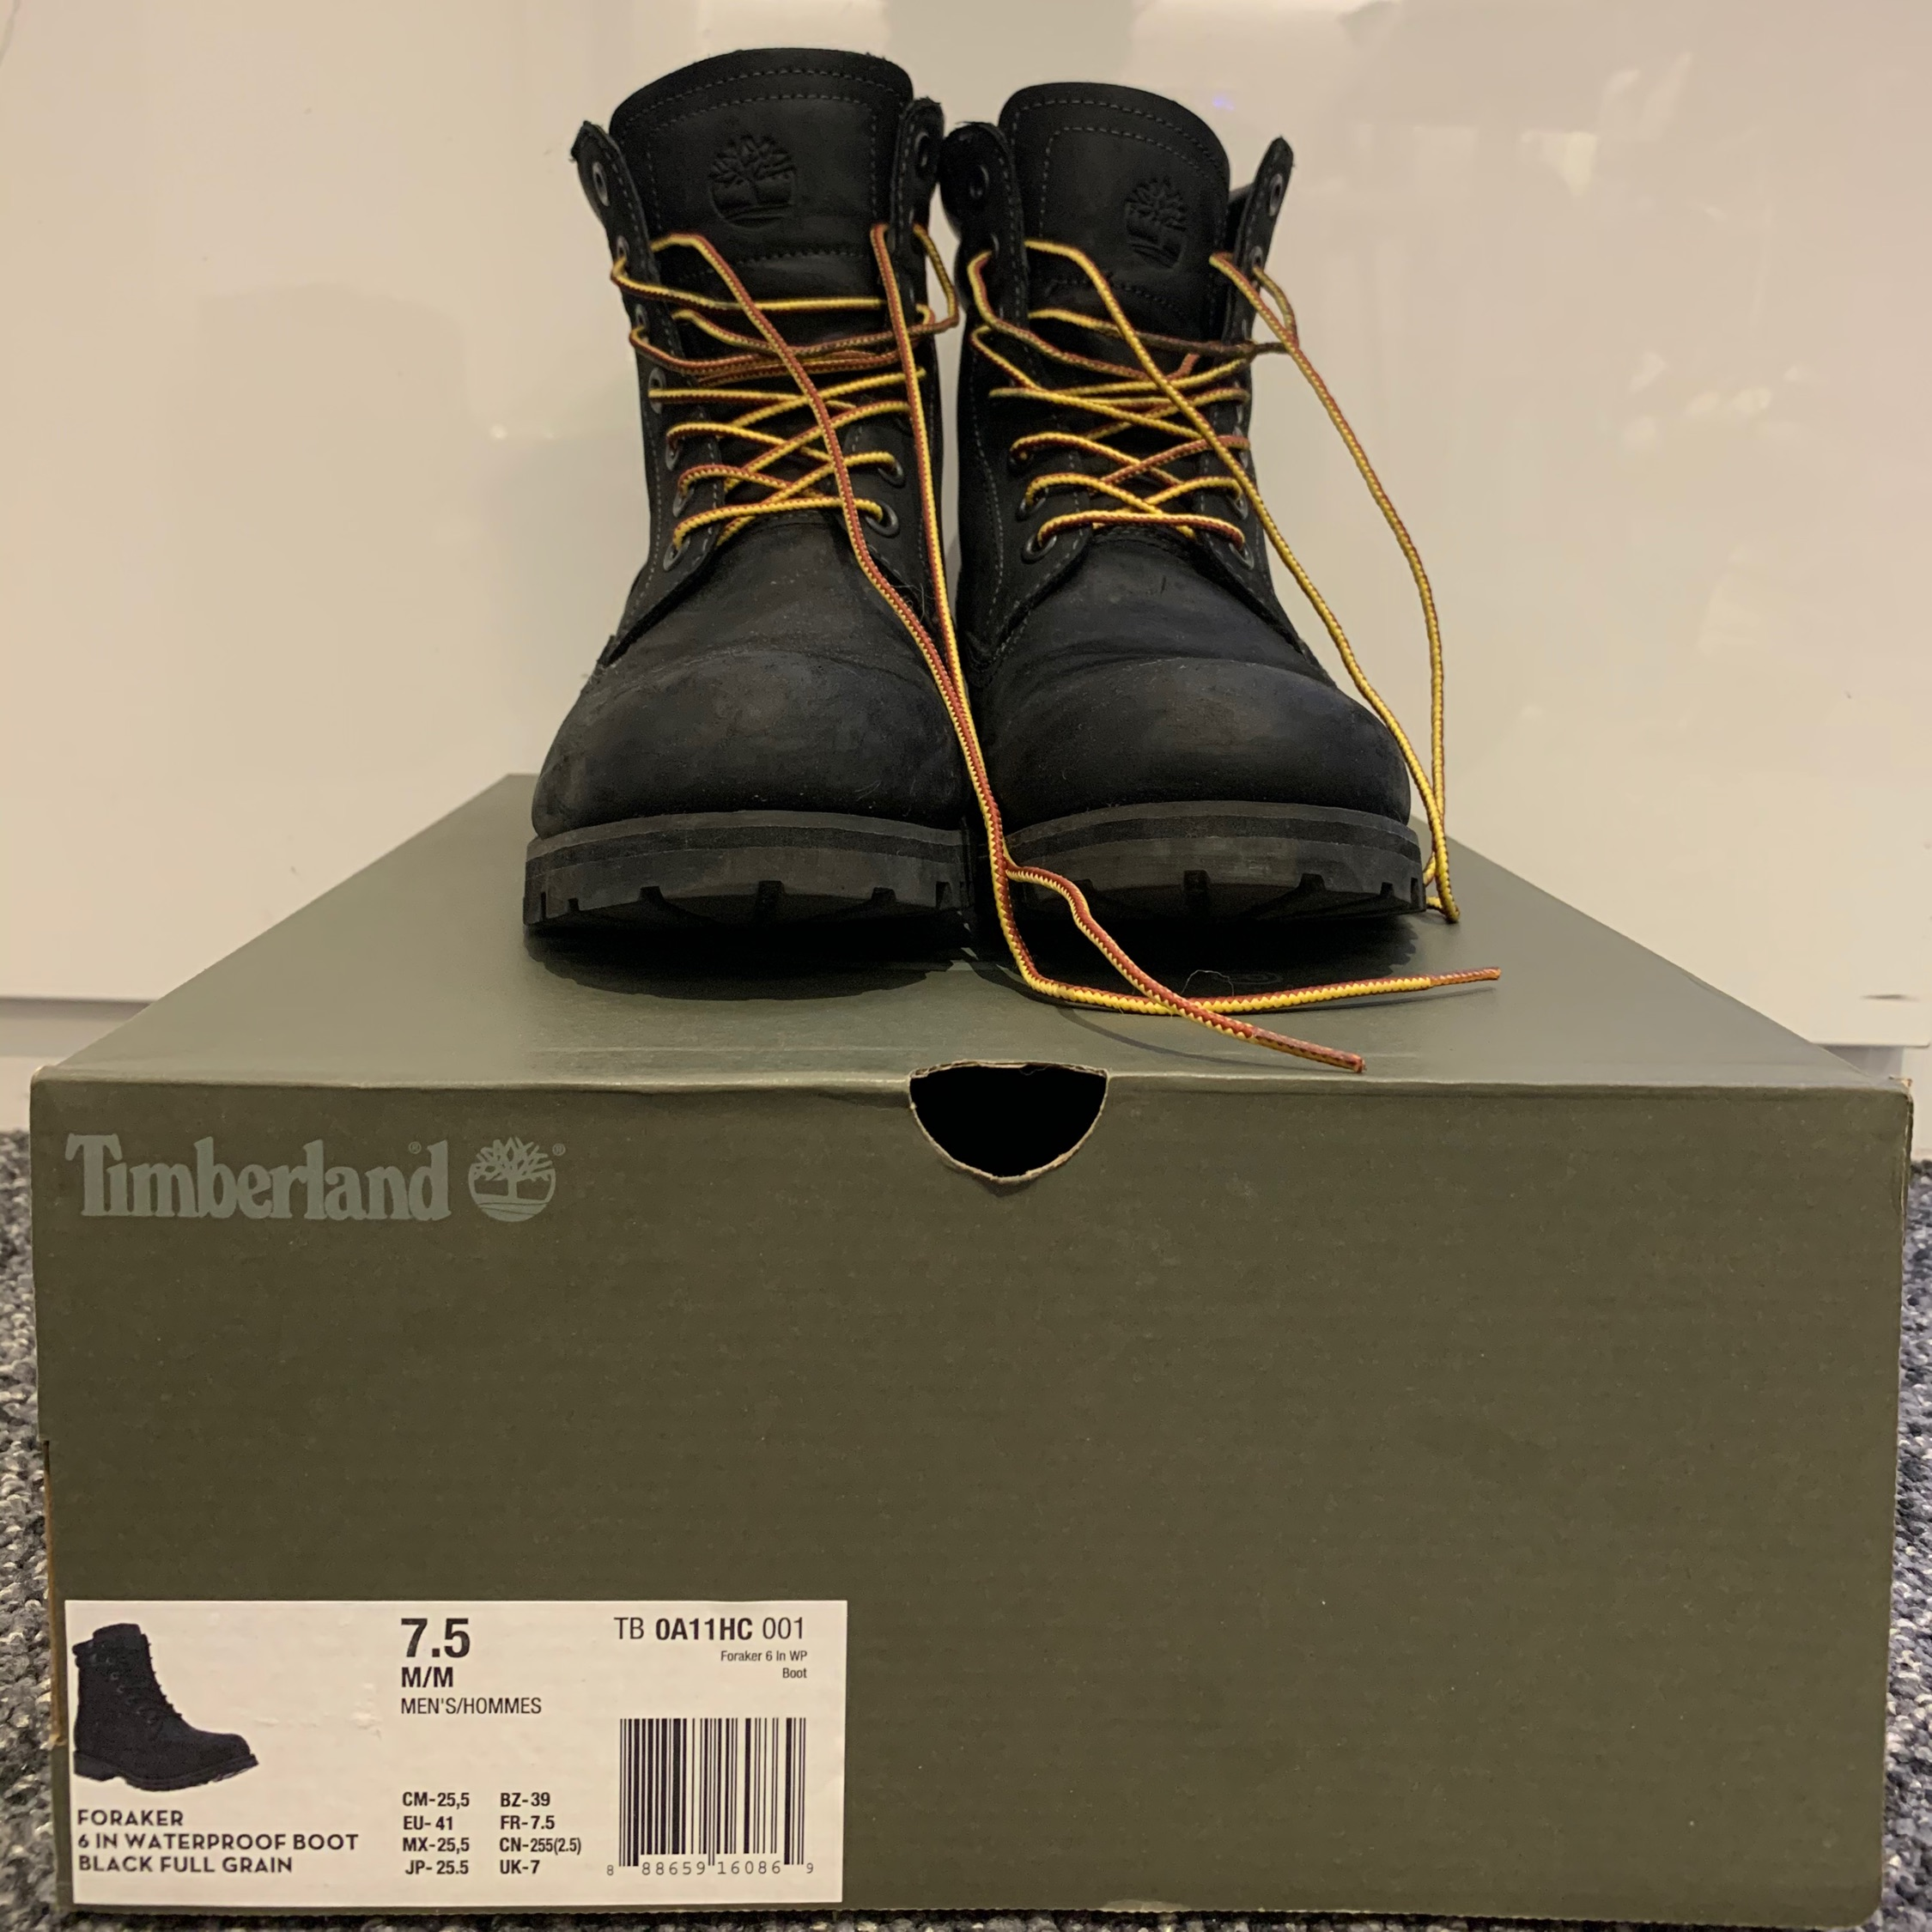 Timberland Foraker 6 Inch Waterproof Boot Boots